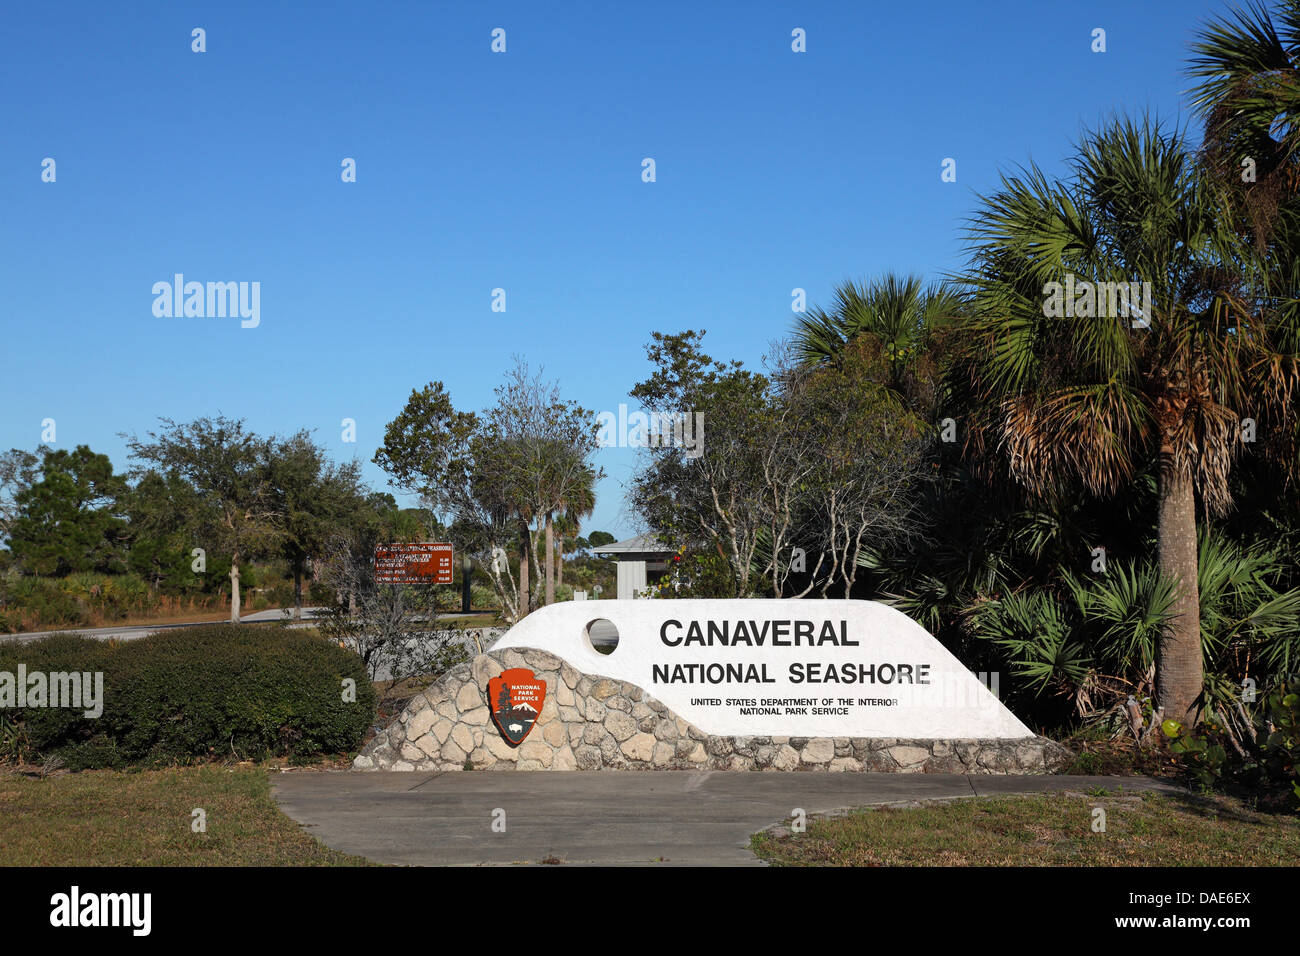 entrance to the conservation area 'Canaveral National Seashore', USA, Florida, Merritt Island - Stock Image